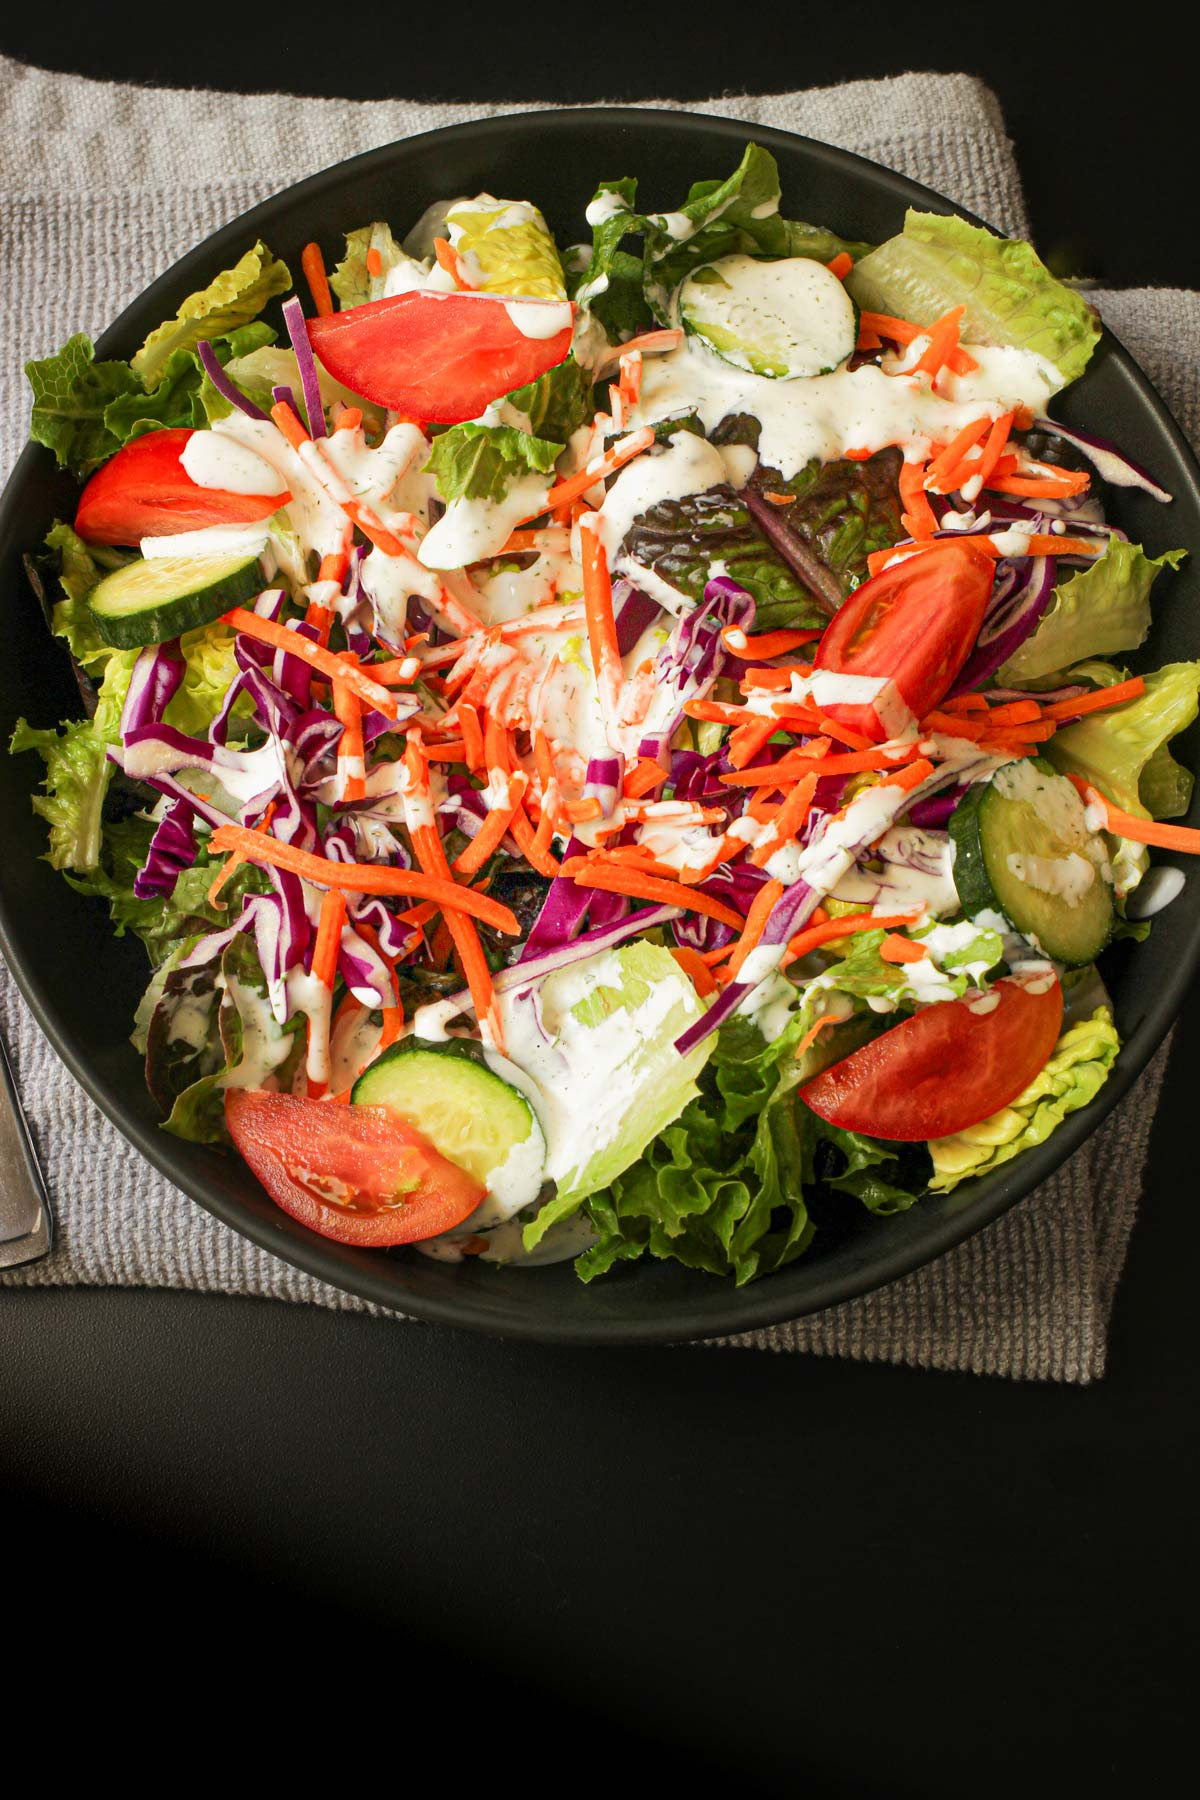 black salad bowl full of a green salad topped with buttermilk dressing.